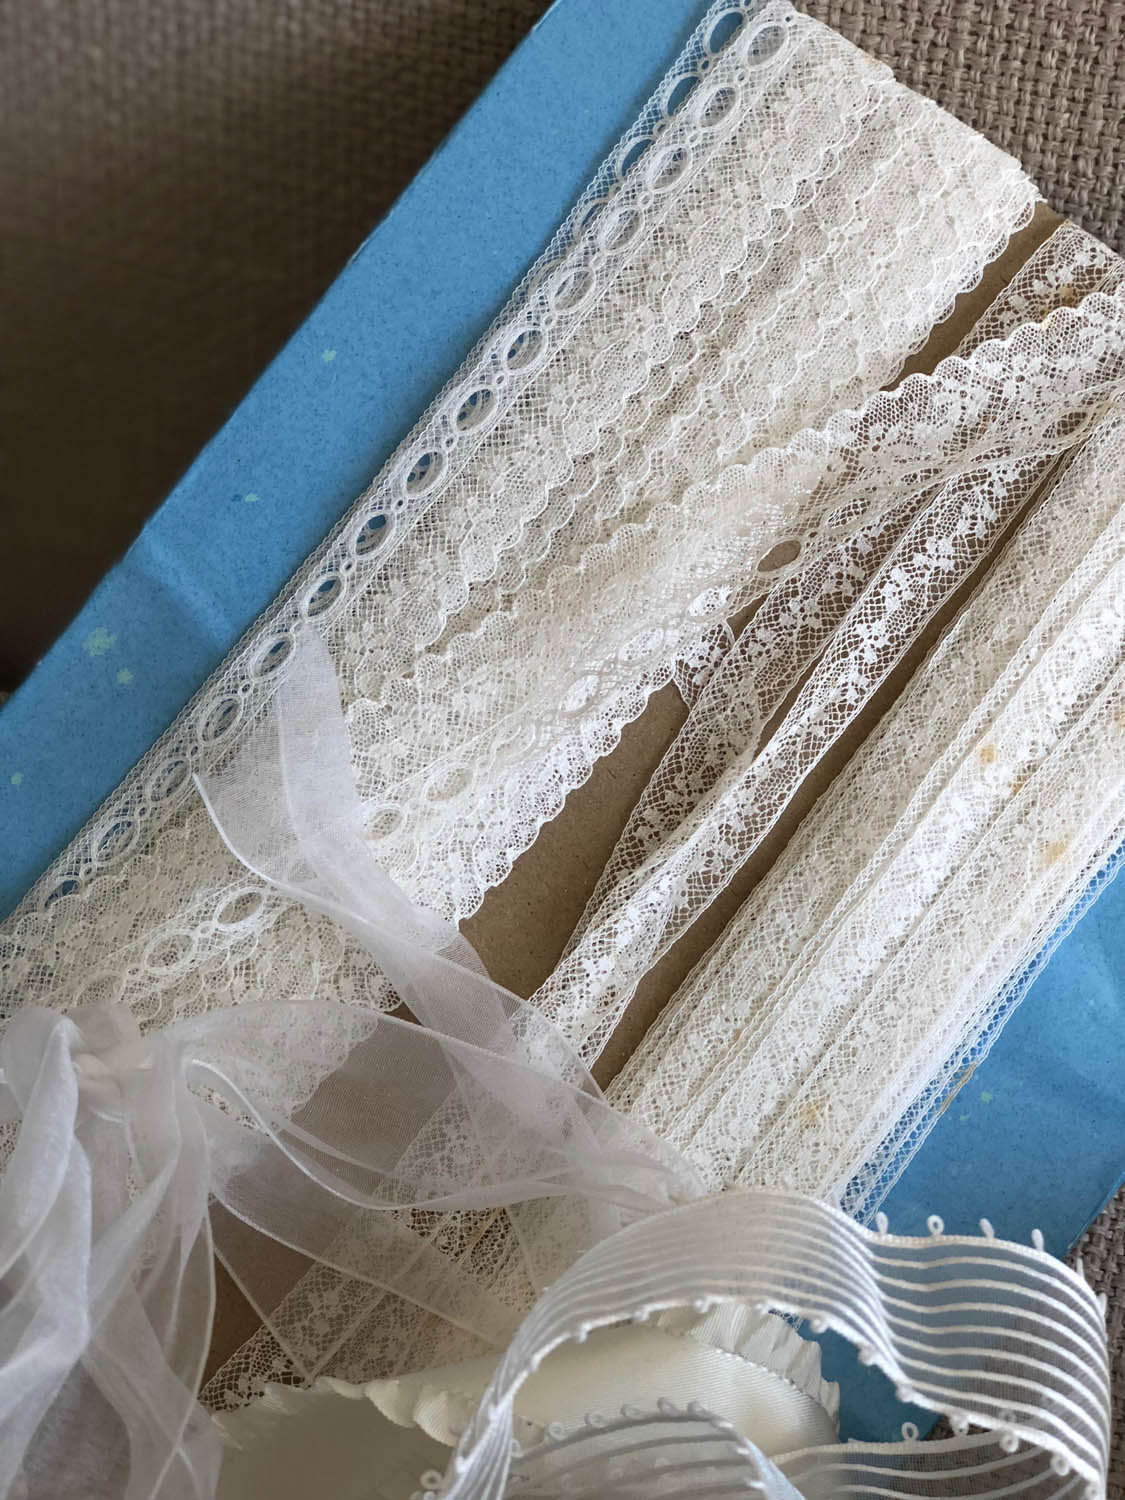 lace trim used to wrap and embellish gifts